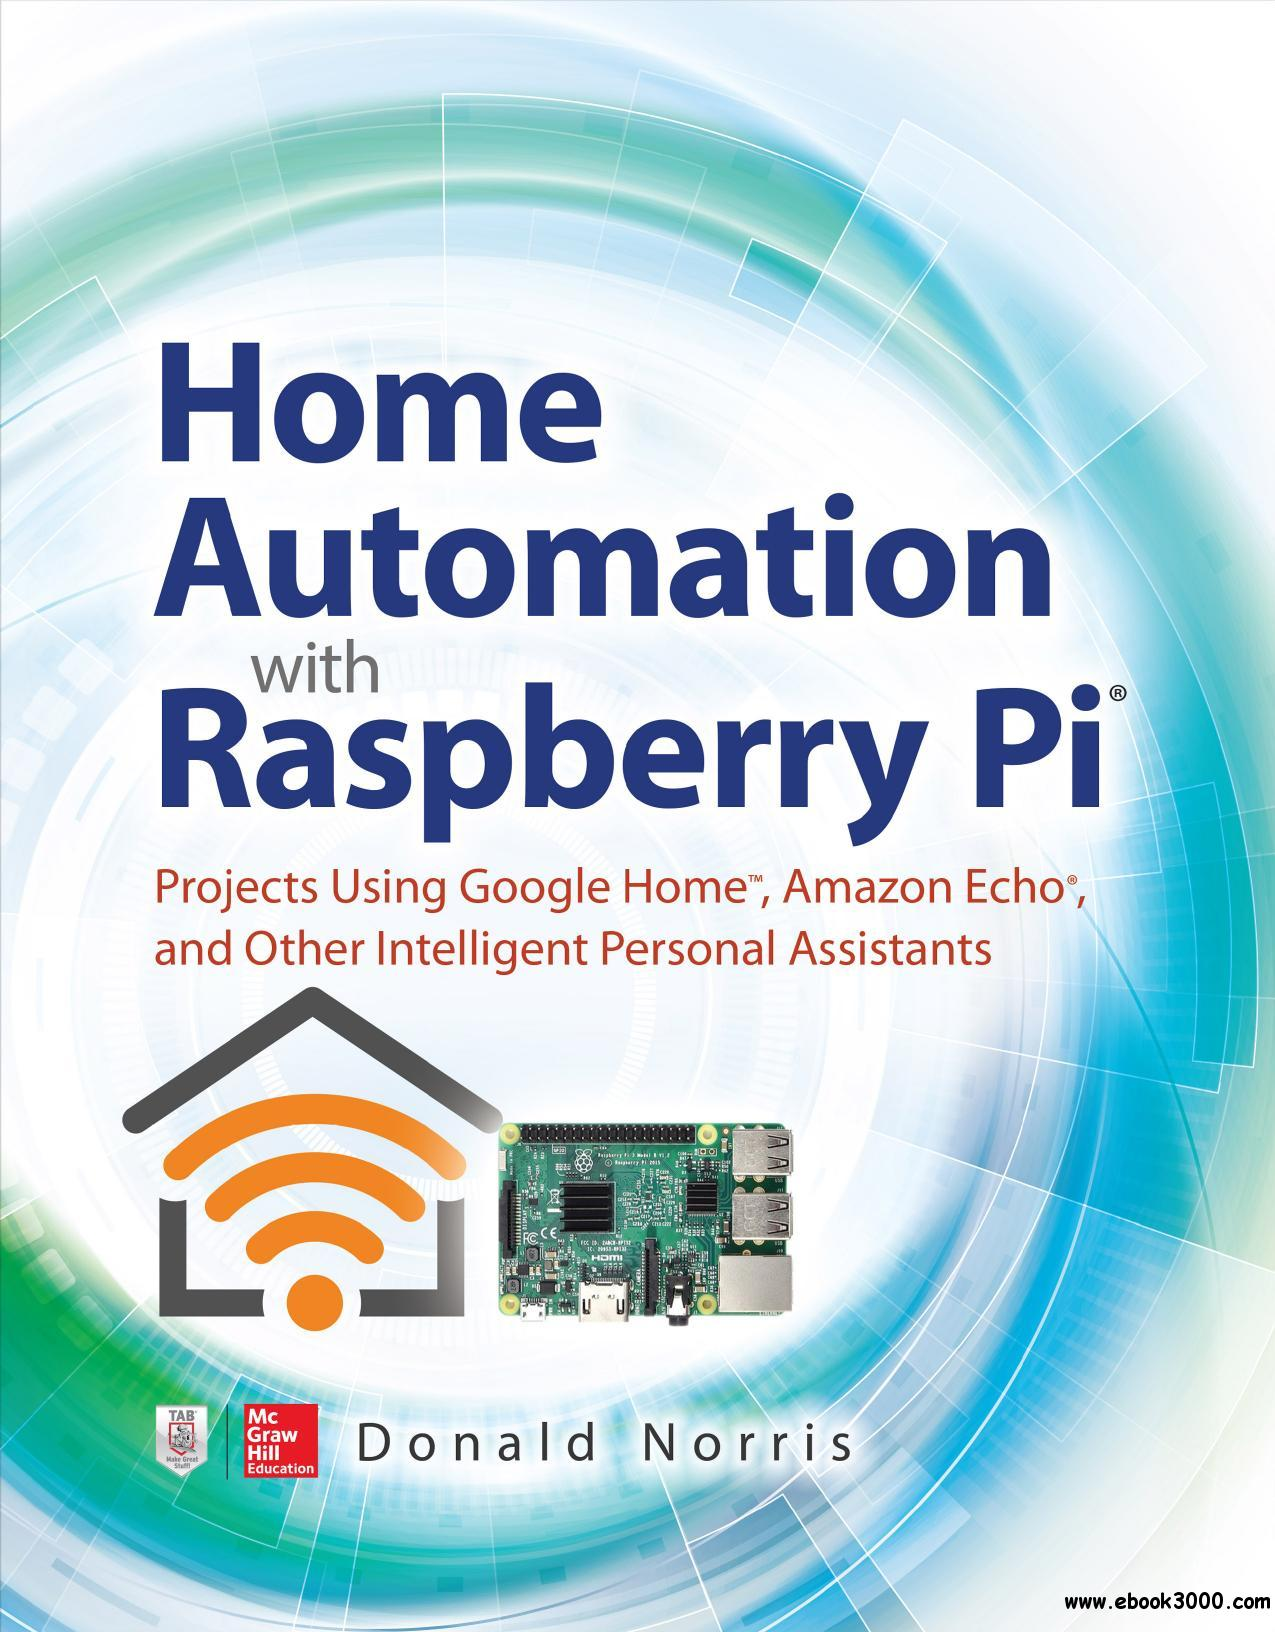 Home Automation with Raspberry Pi